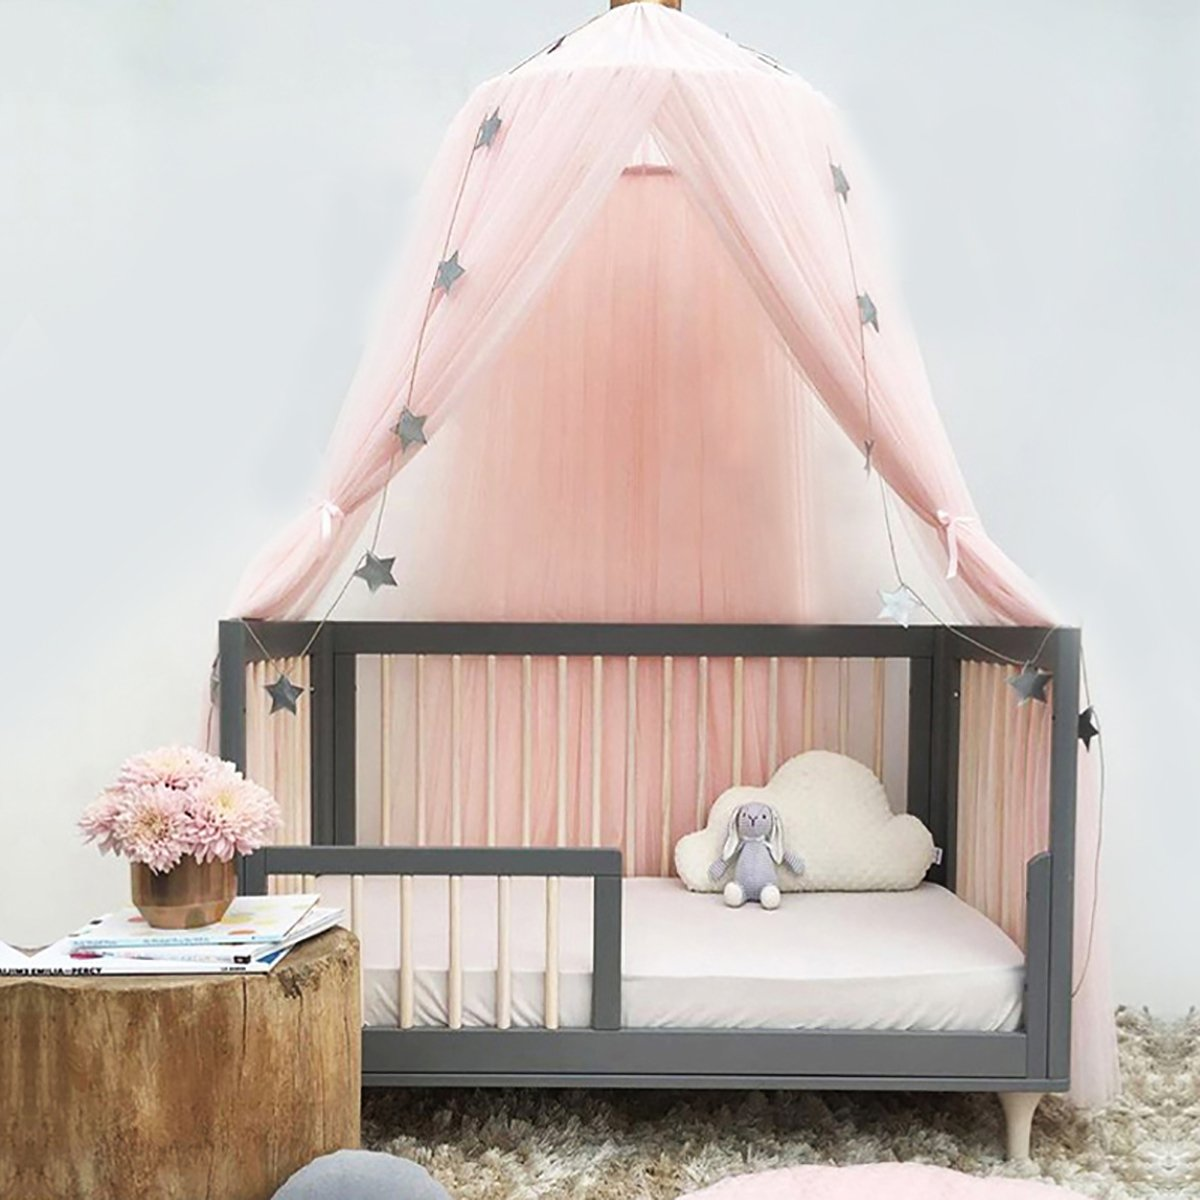 Jeteven Polyester Dome Princess Bed Canopy Kids Play Tent Mosquito Net with Crown for Baby Kids Indoor Outdoor Playing Reading Height 240cm/94.5in Pink